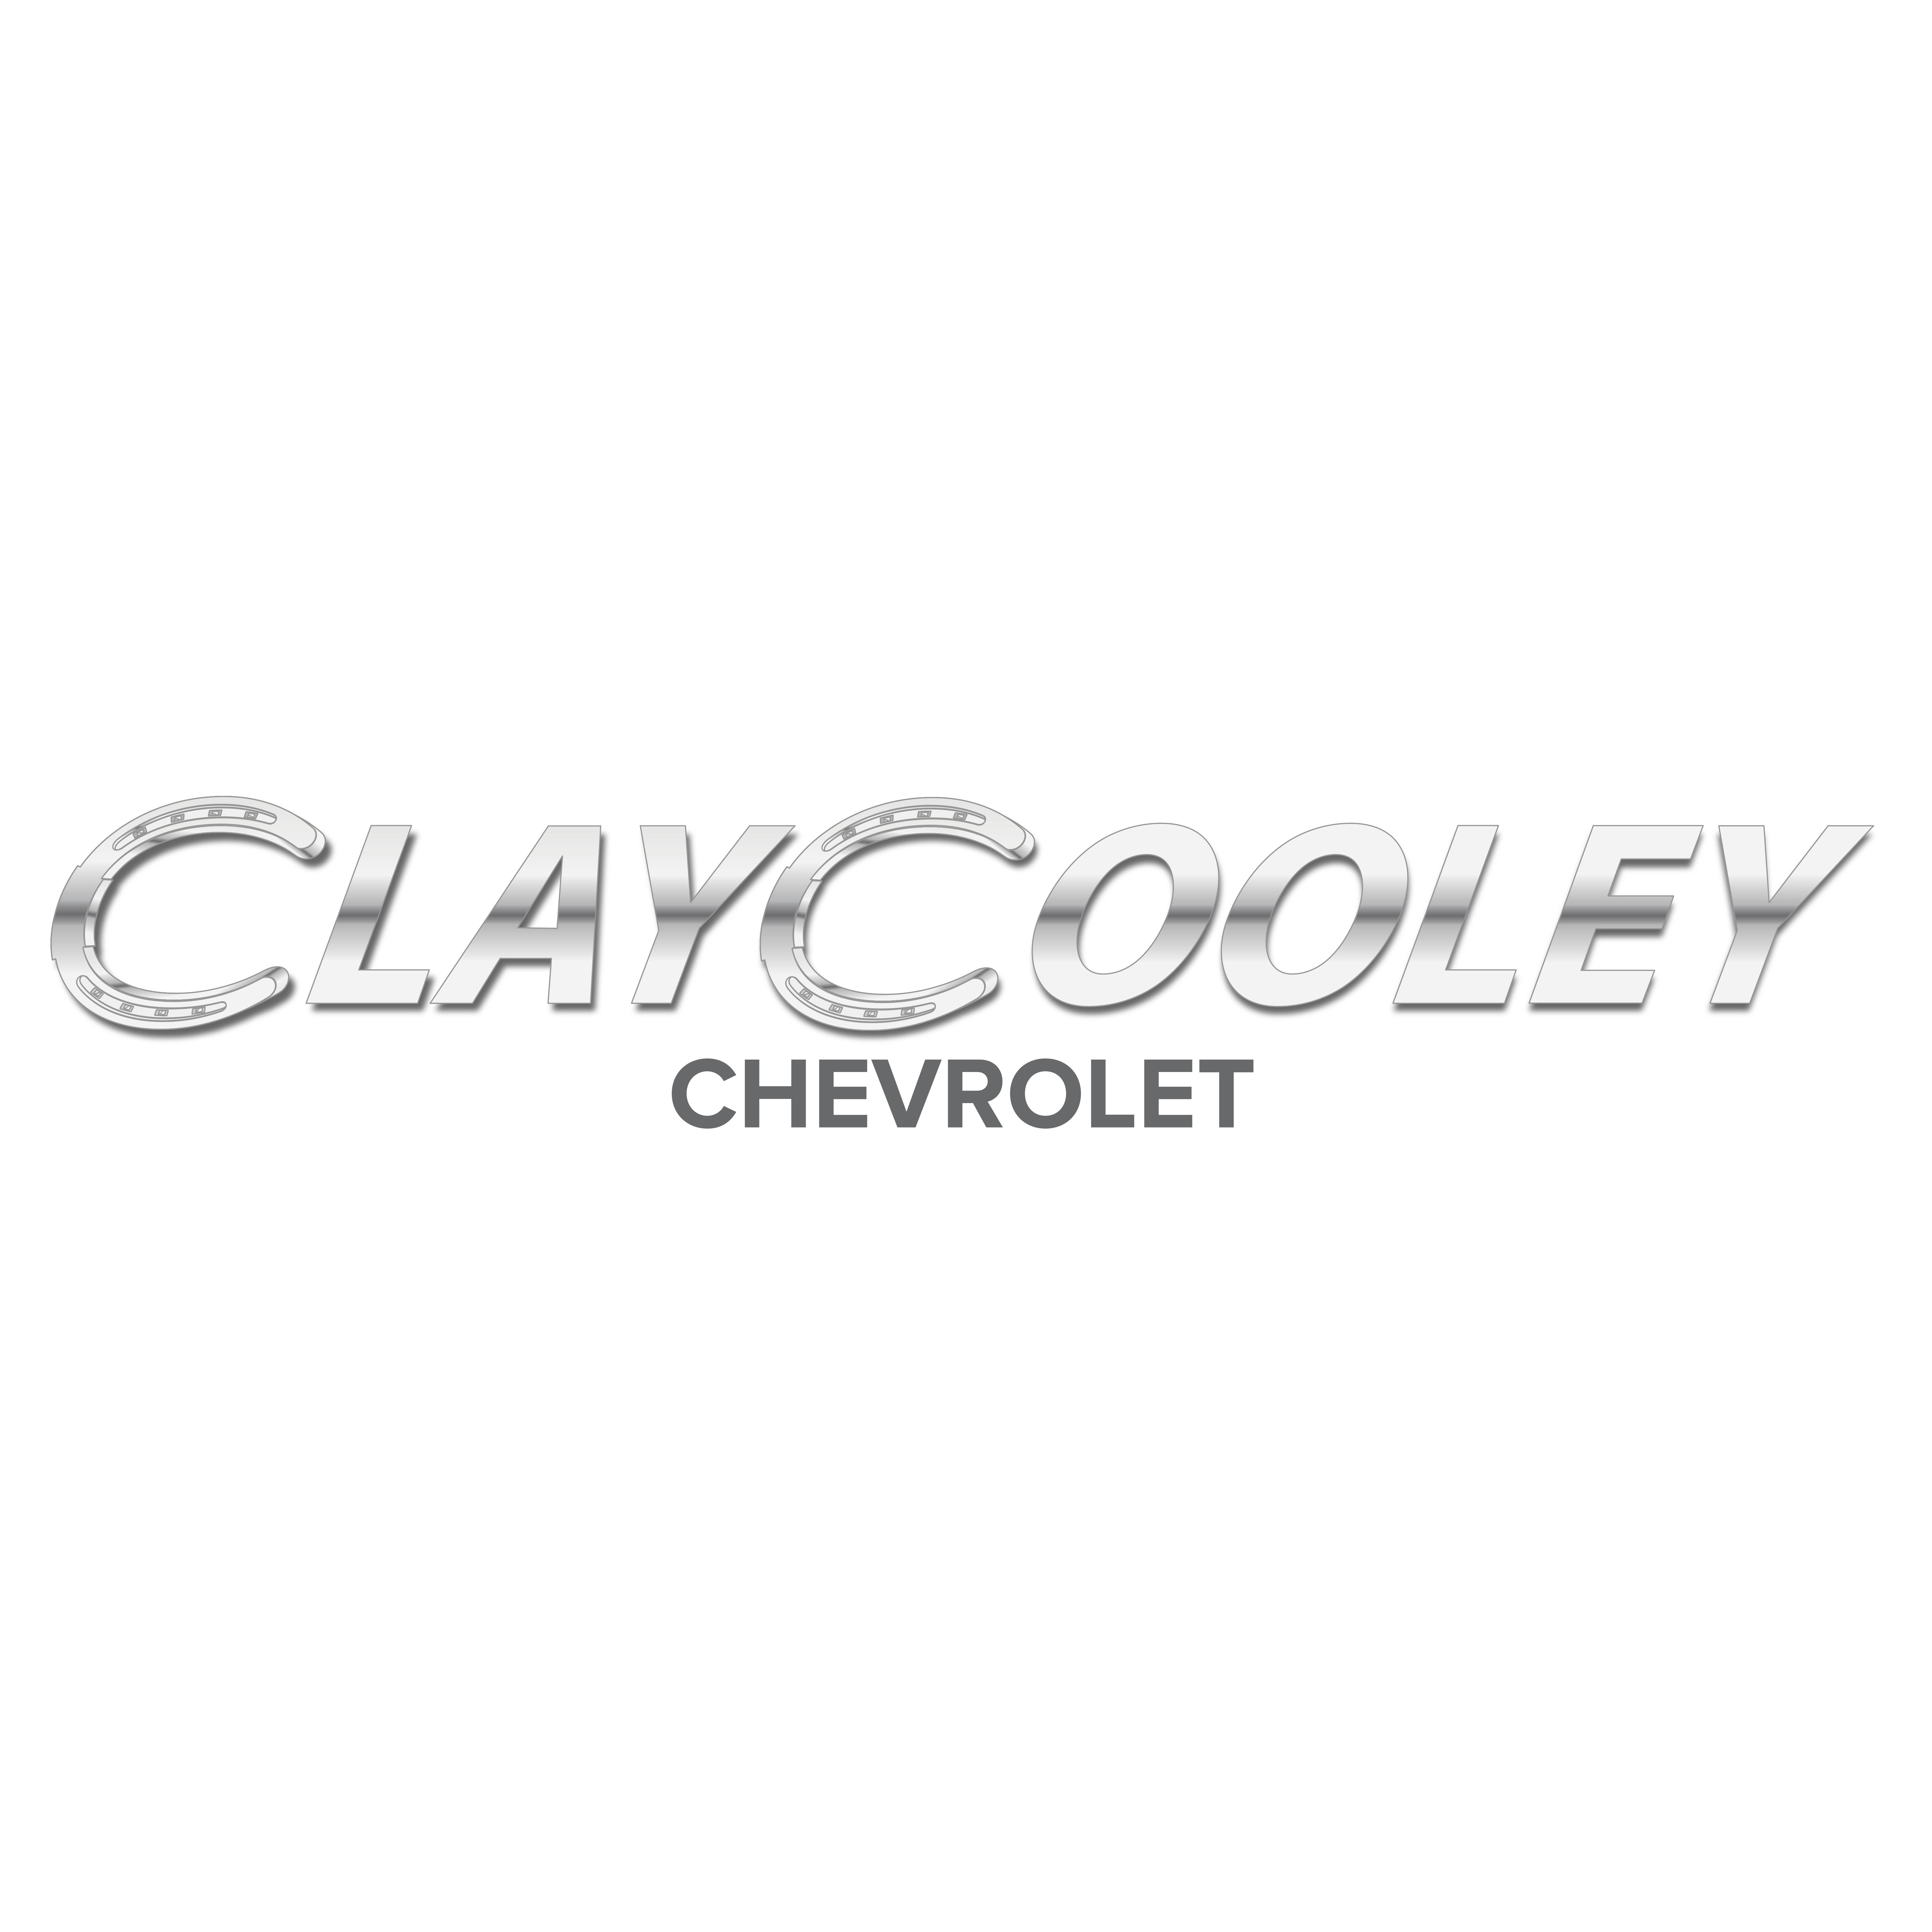 Clay Cooley Chevrolet at 1251 E. Airport Fwy, Irving, TX ...